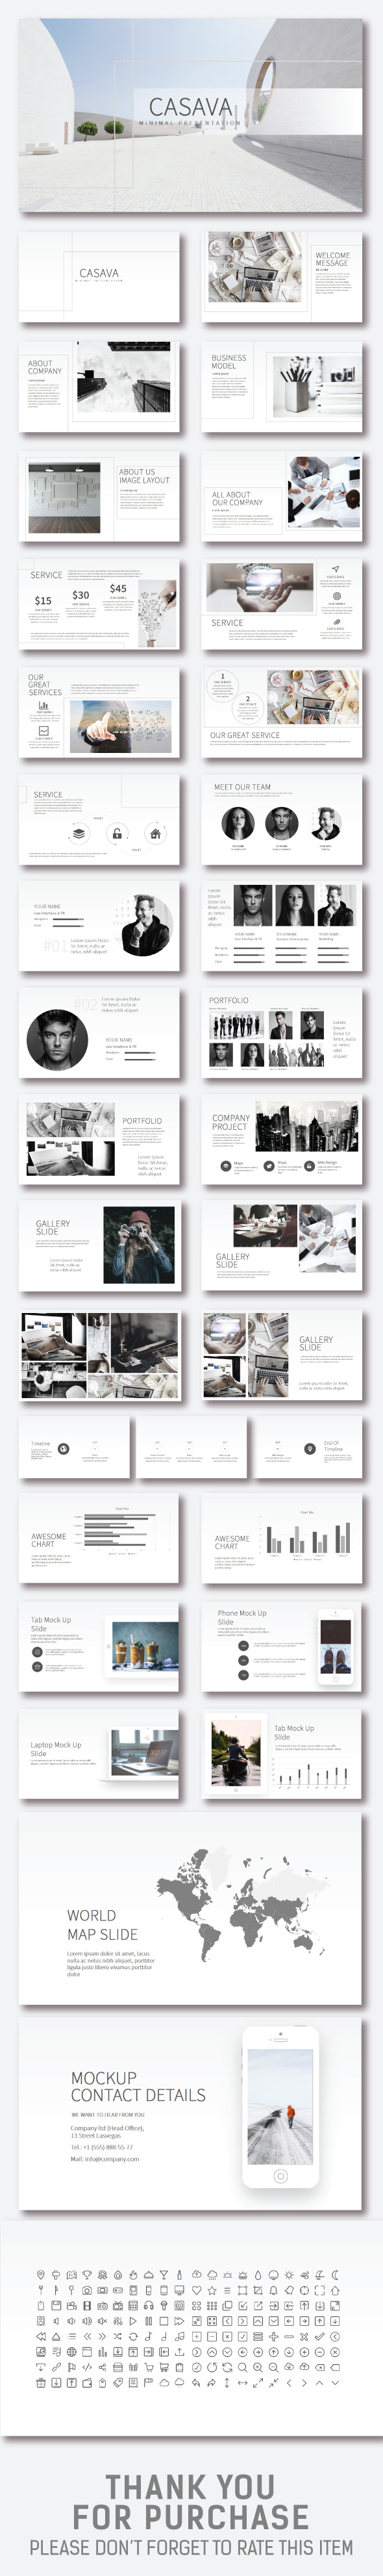 Casava Google Slide Presentation - Google Slides Presentation Templates